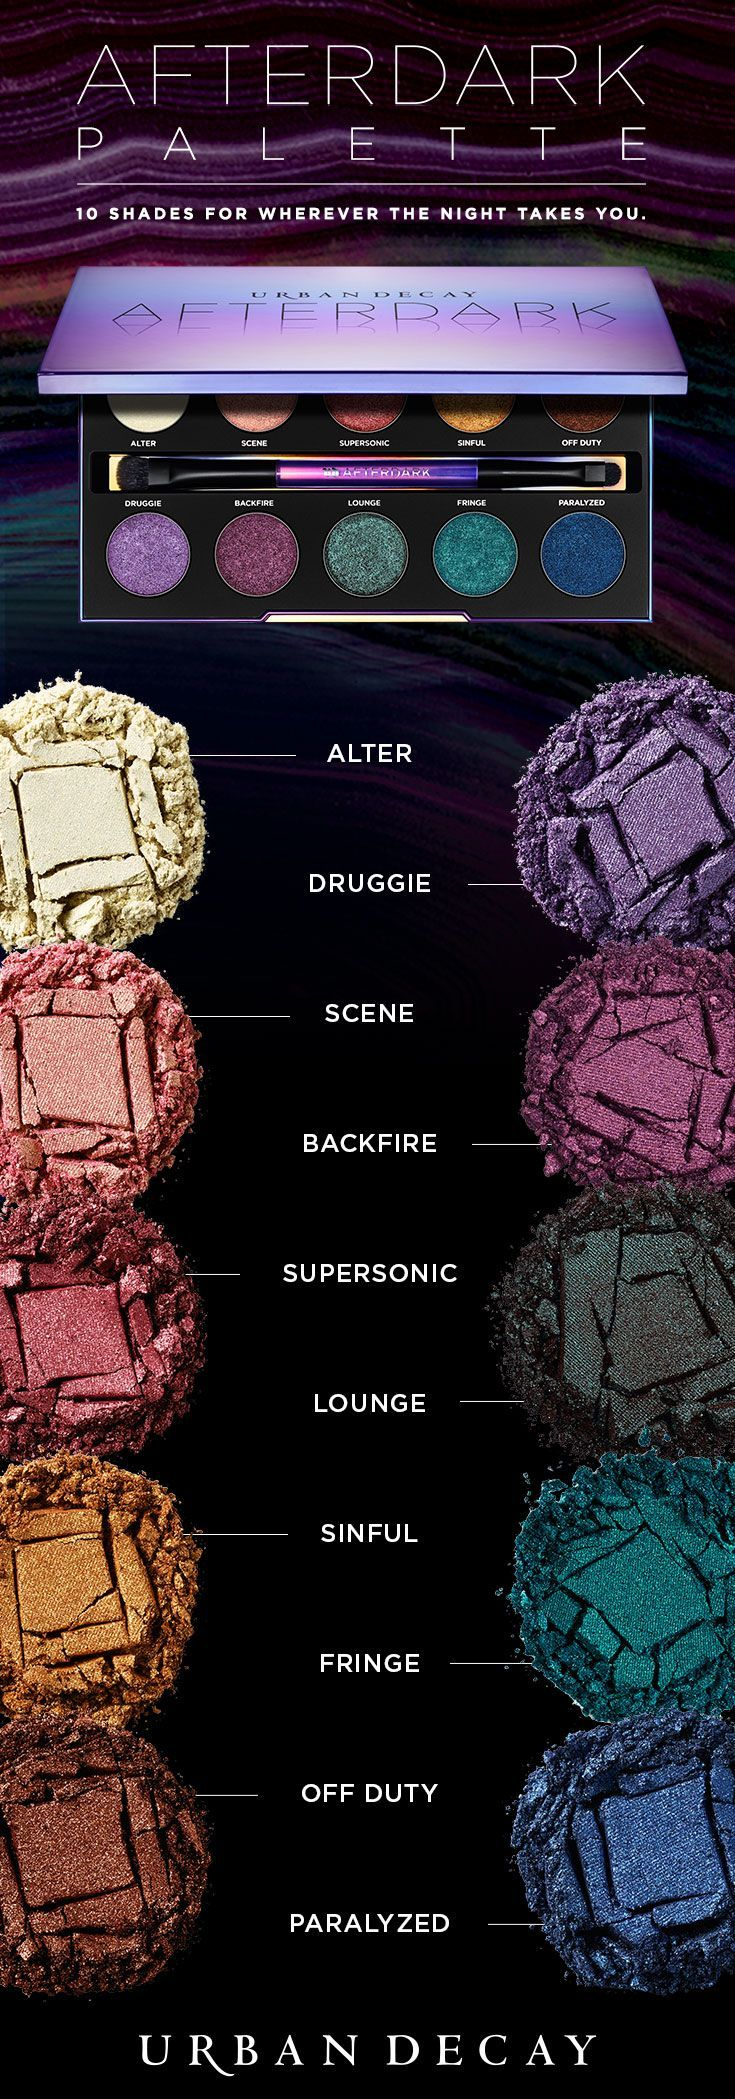 With late-night rendezvous in mind, we created the Afterdark Palette, the perfect shadow collection for night owls. This jewel-toned collection contains 10 sultry shades of Eyeshadow—seven NEW and three cult favorites no UD junkie should be without.